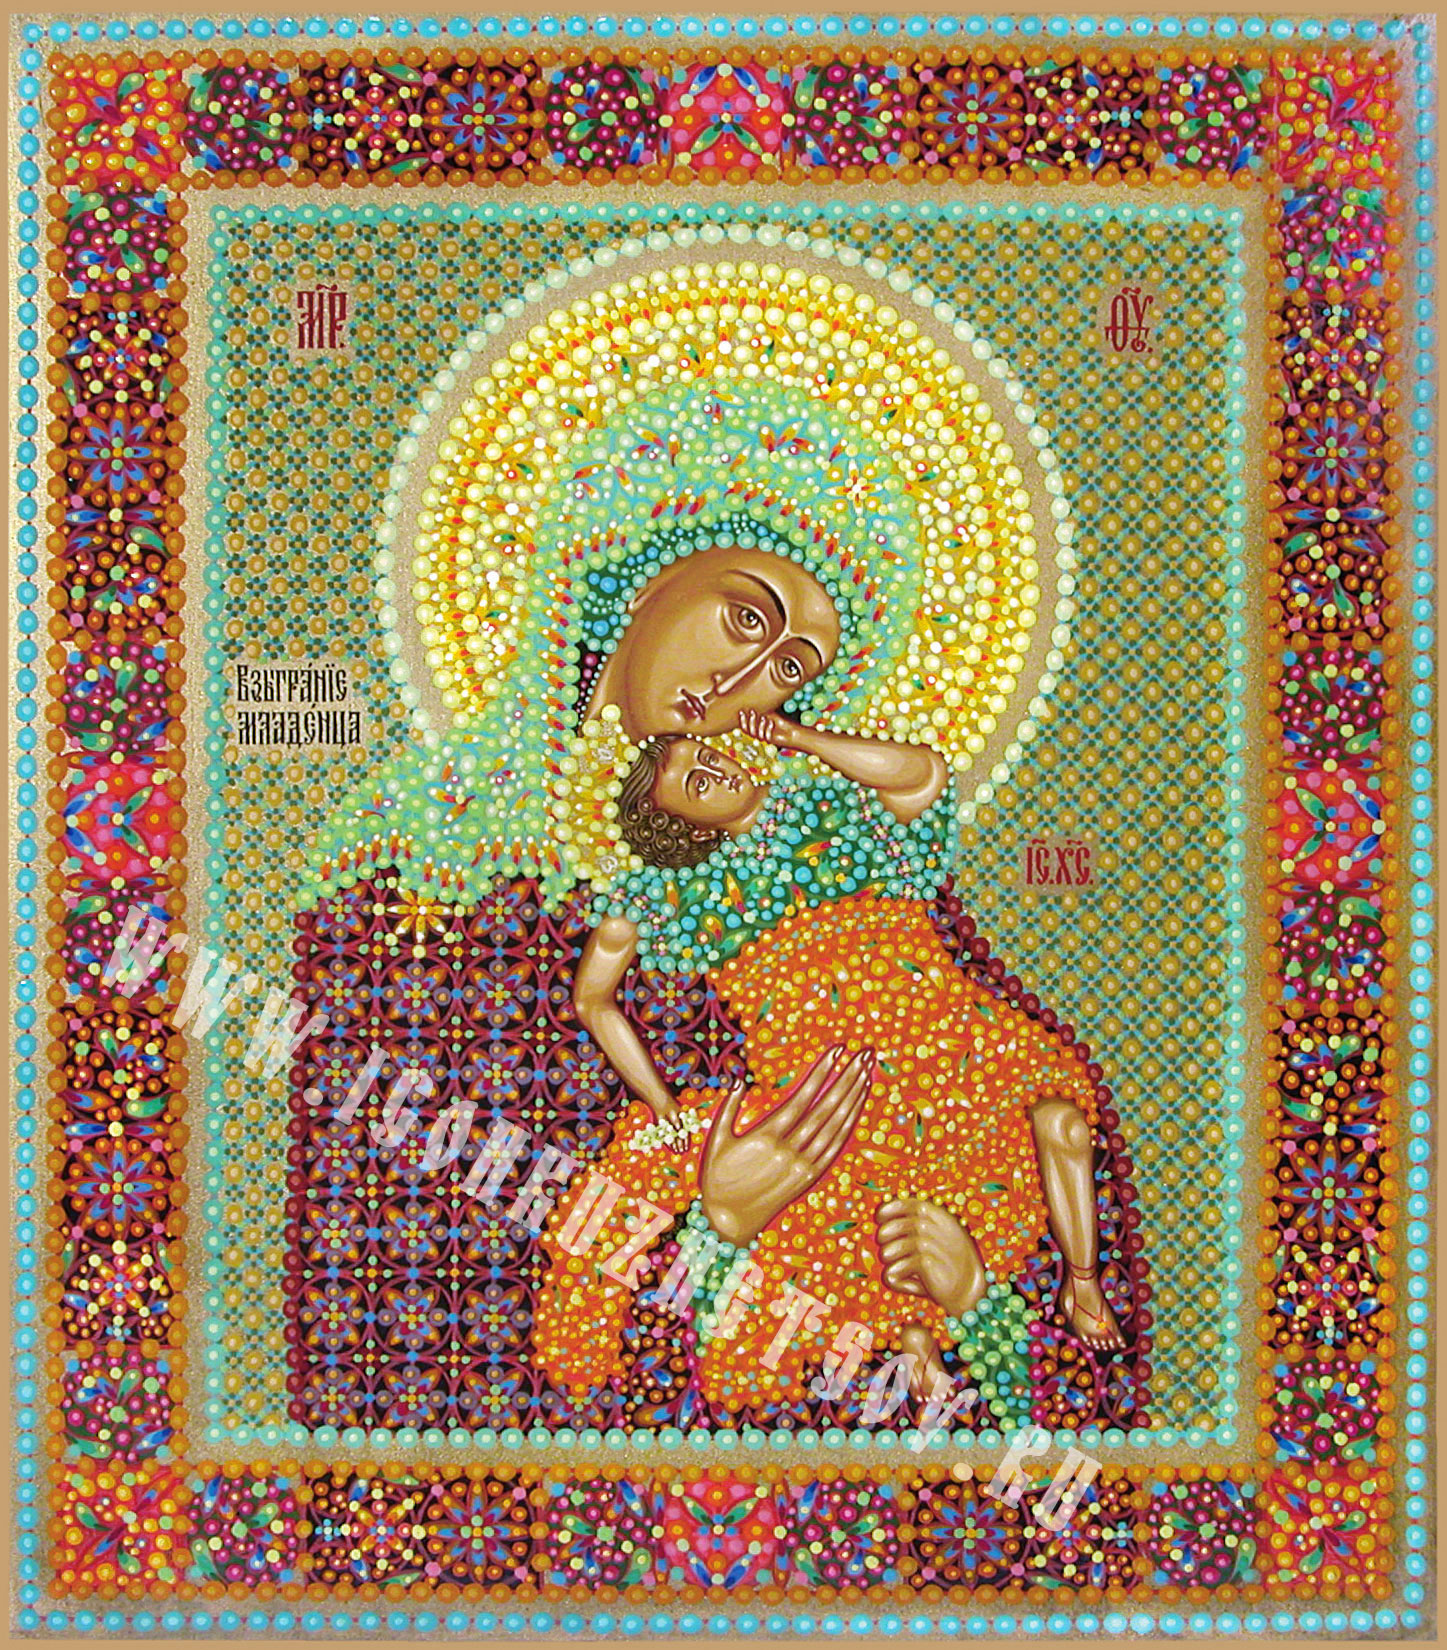 Intercessor from troubles and sorrows: the icon of the Protection of the Holy Virgin